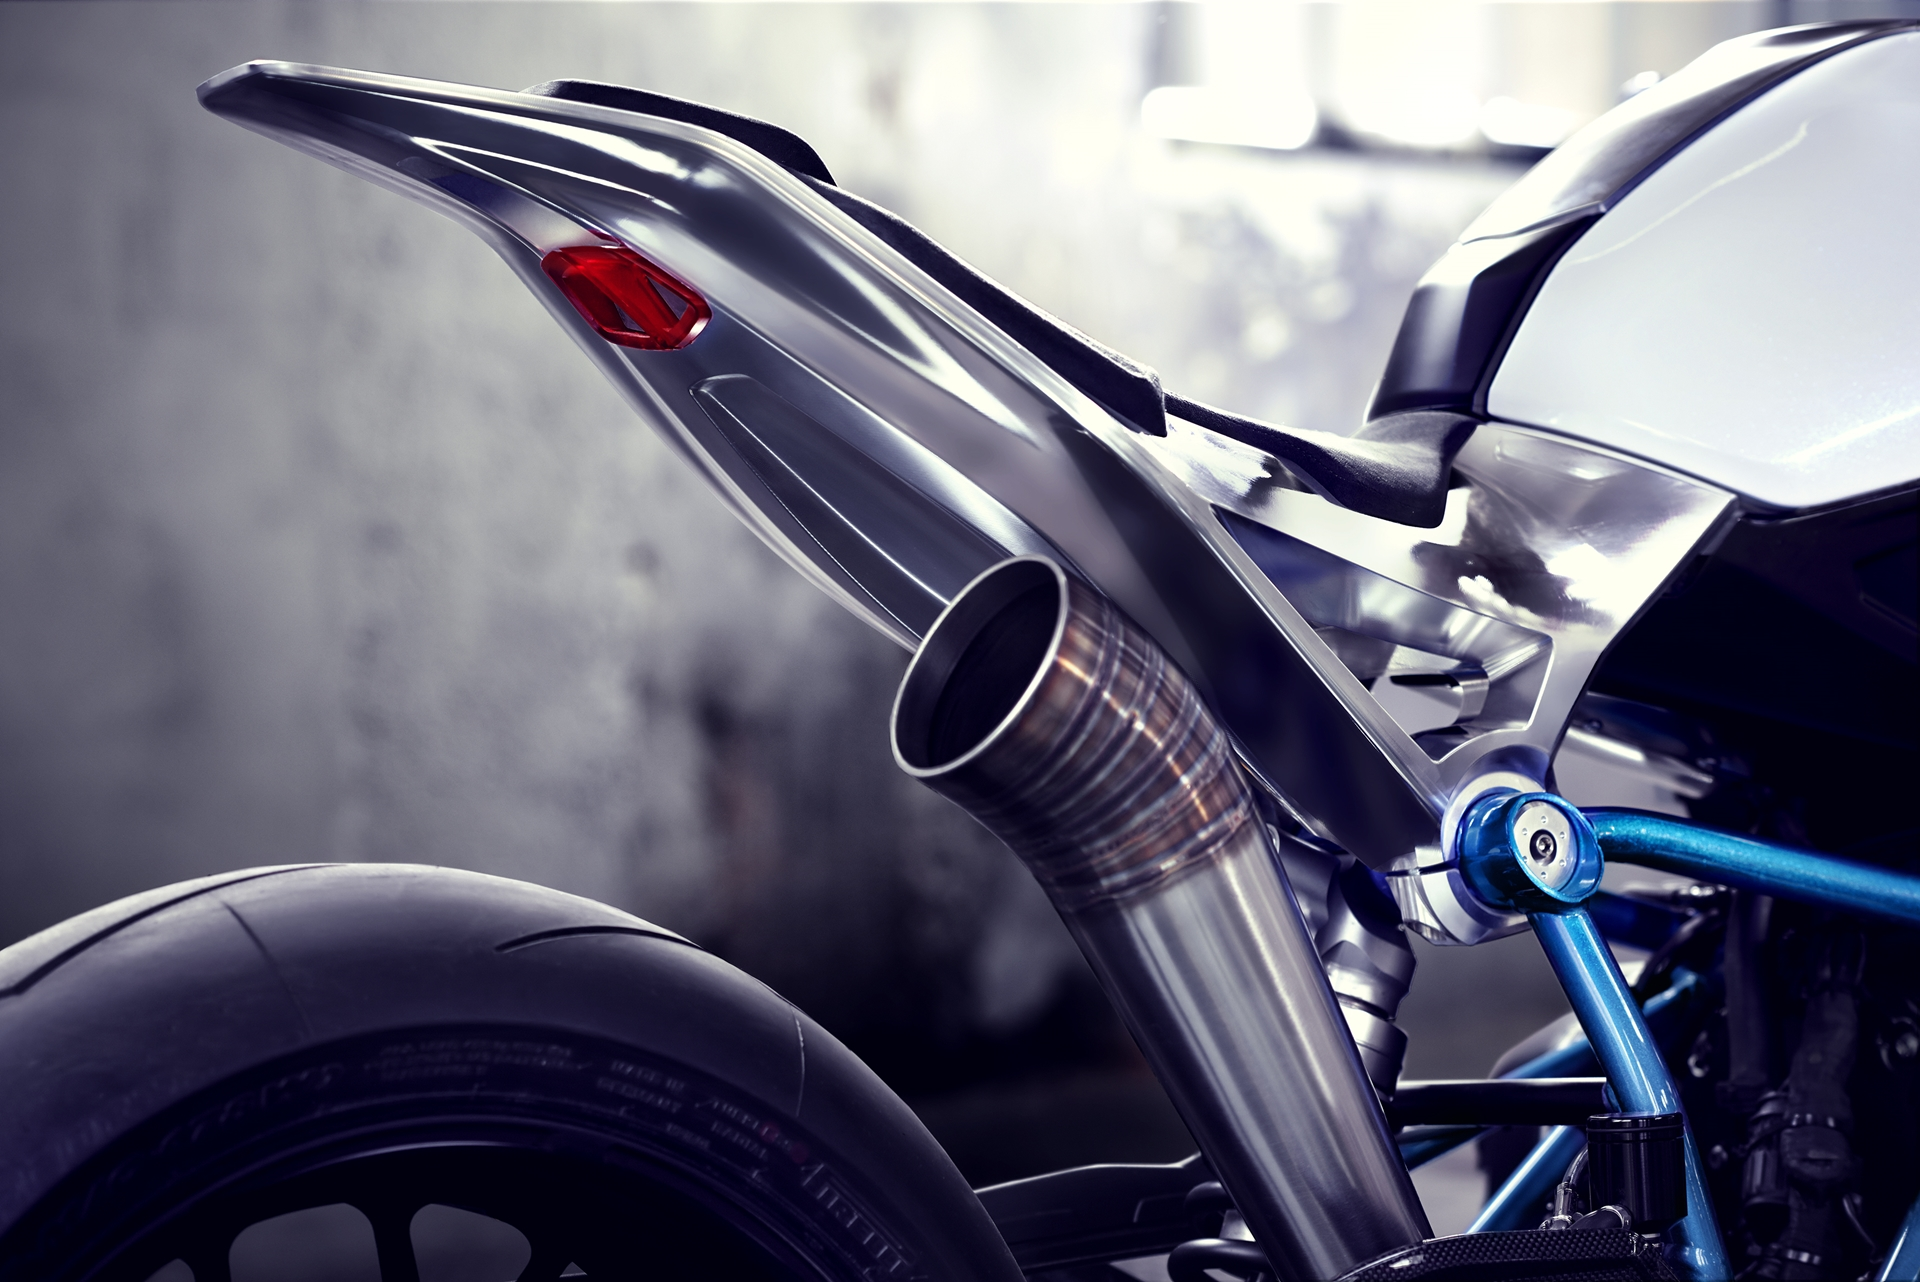 BMW-Motorcycle-Roadster-02